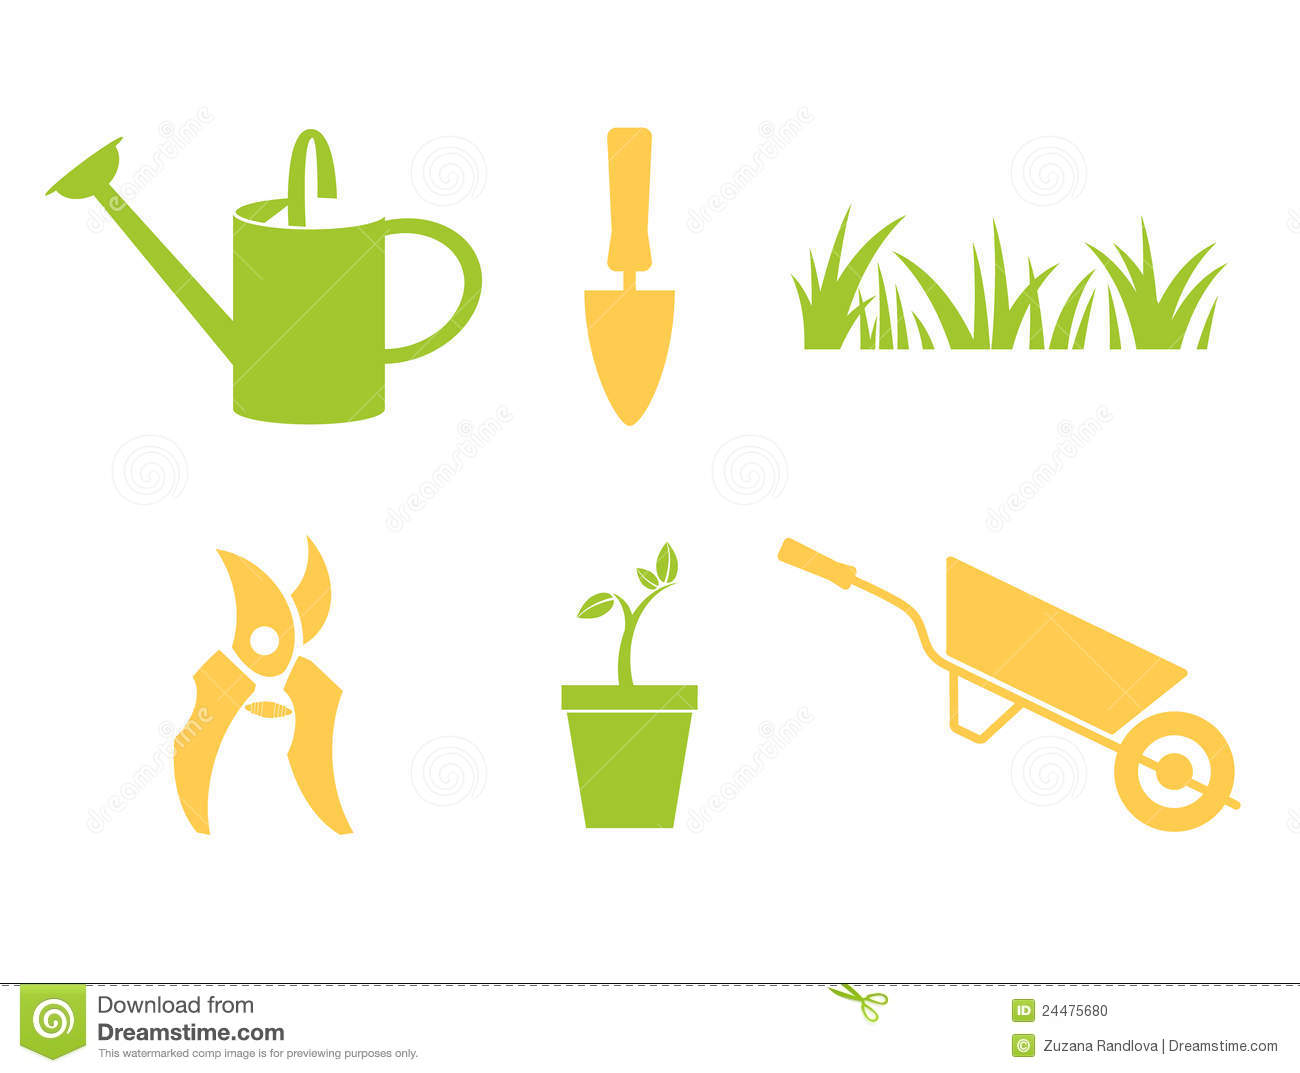 Garden objects & design elements isolated on white.